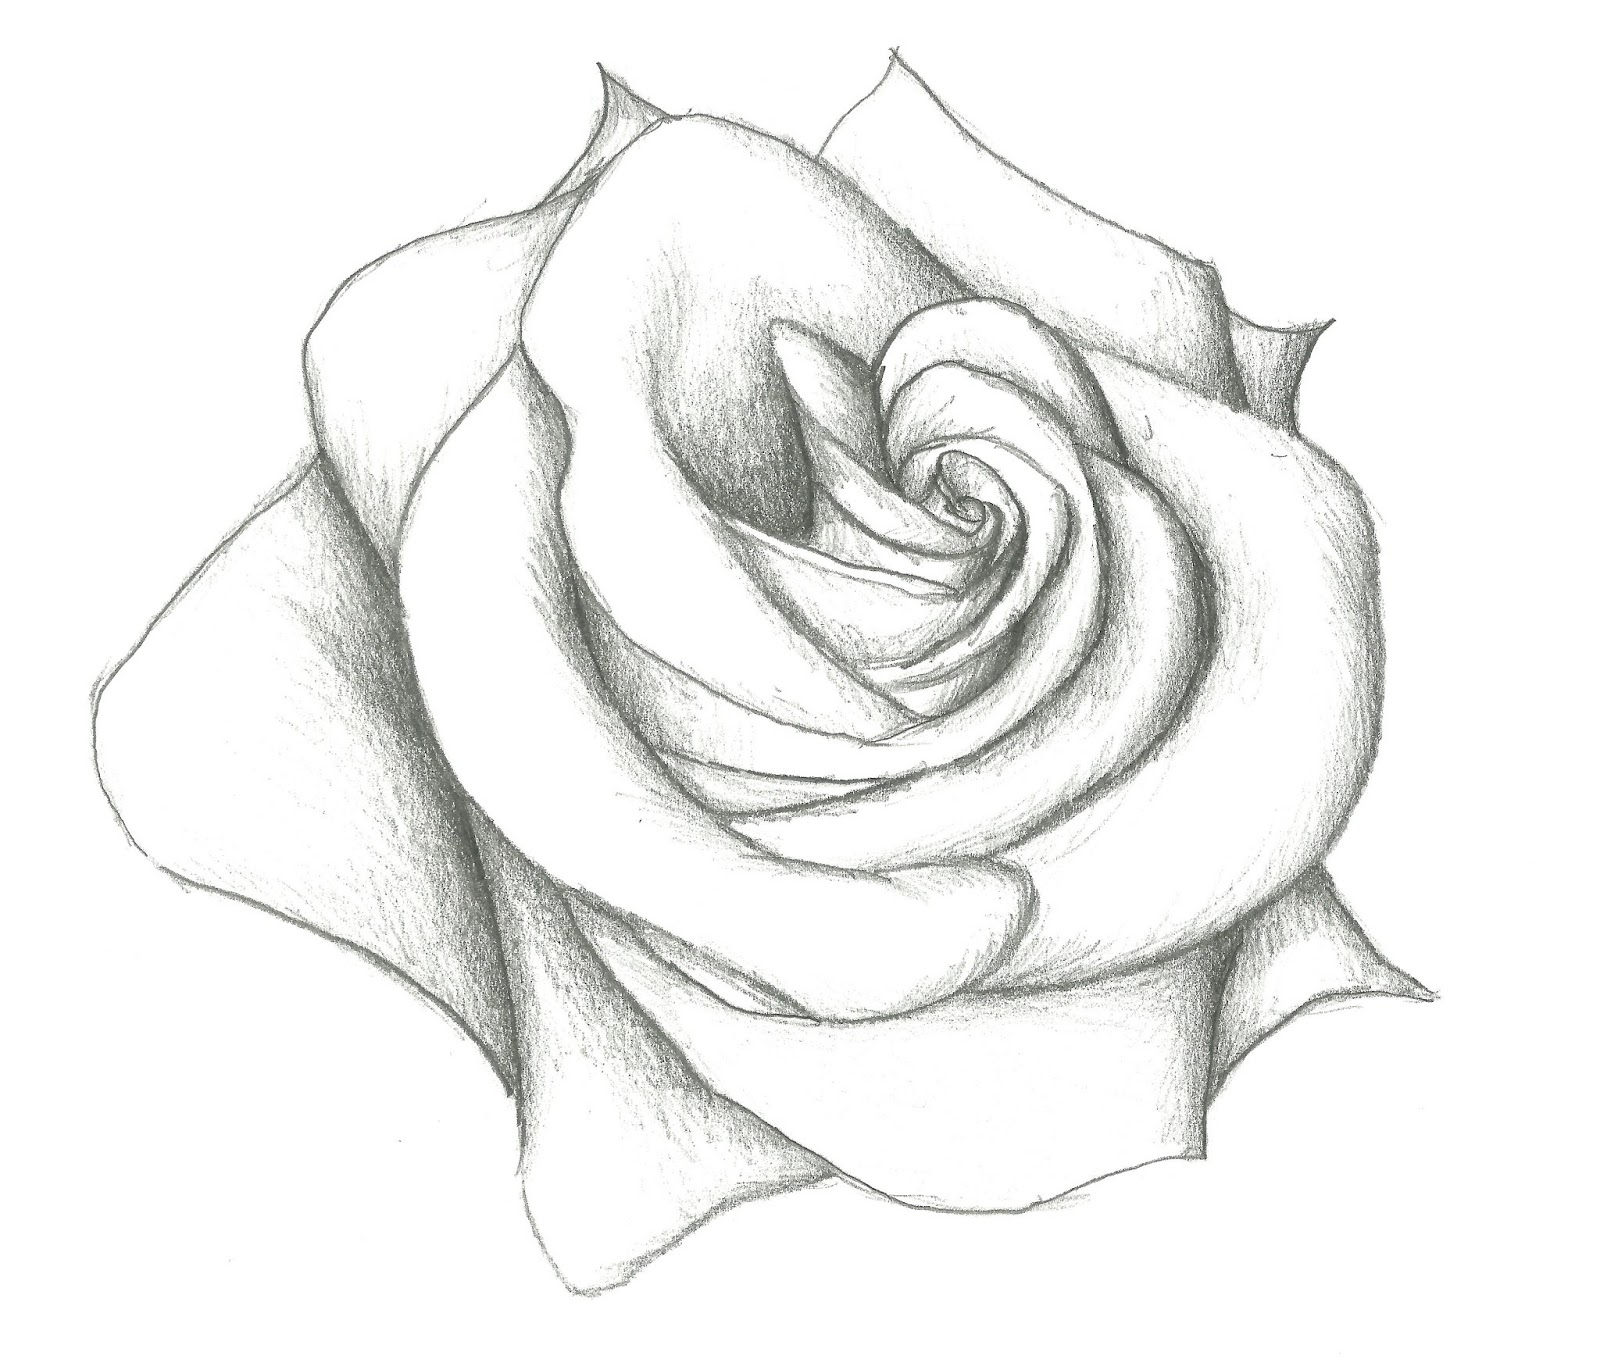 Simple Line Art Rose : Rose drawing at getdrawings free for personal use